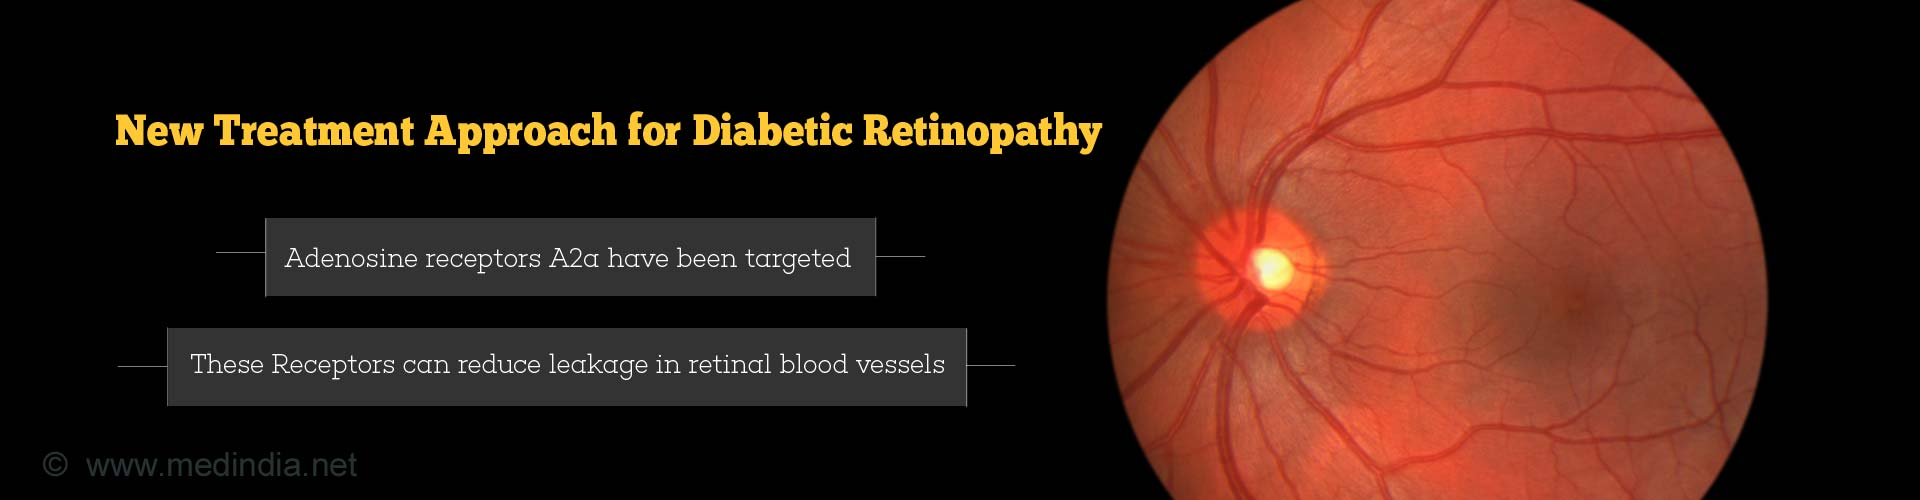 new treatment approach for diabetic retinopathy